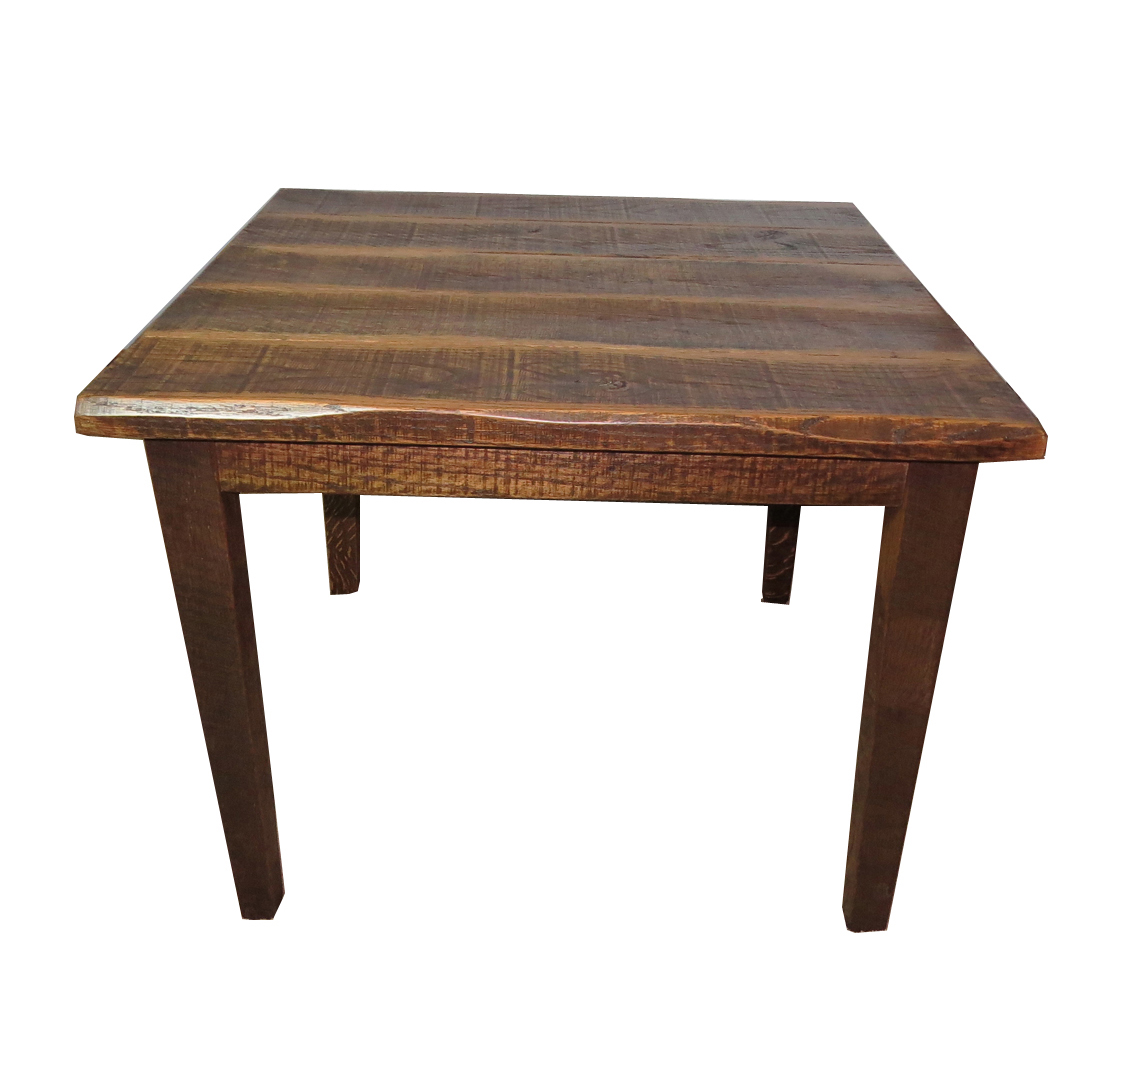 rustic distressed oak 30 high kitchen table with 40x40 top